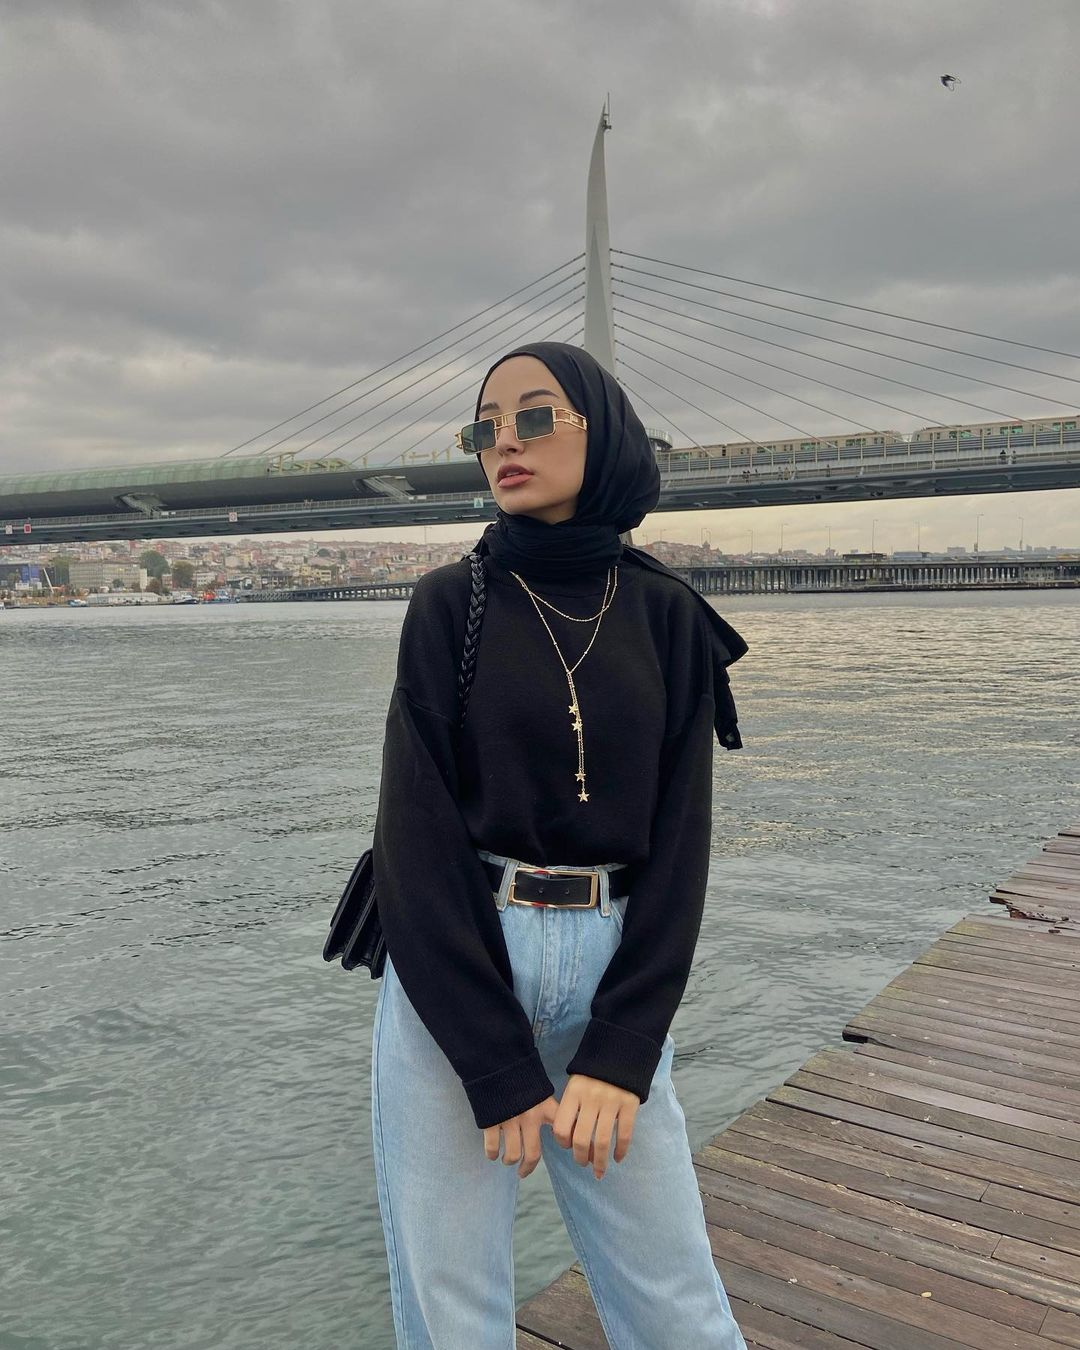 The Most Popular Necklace Trends For Hijab Fashion Girls